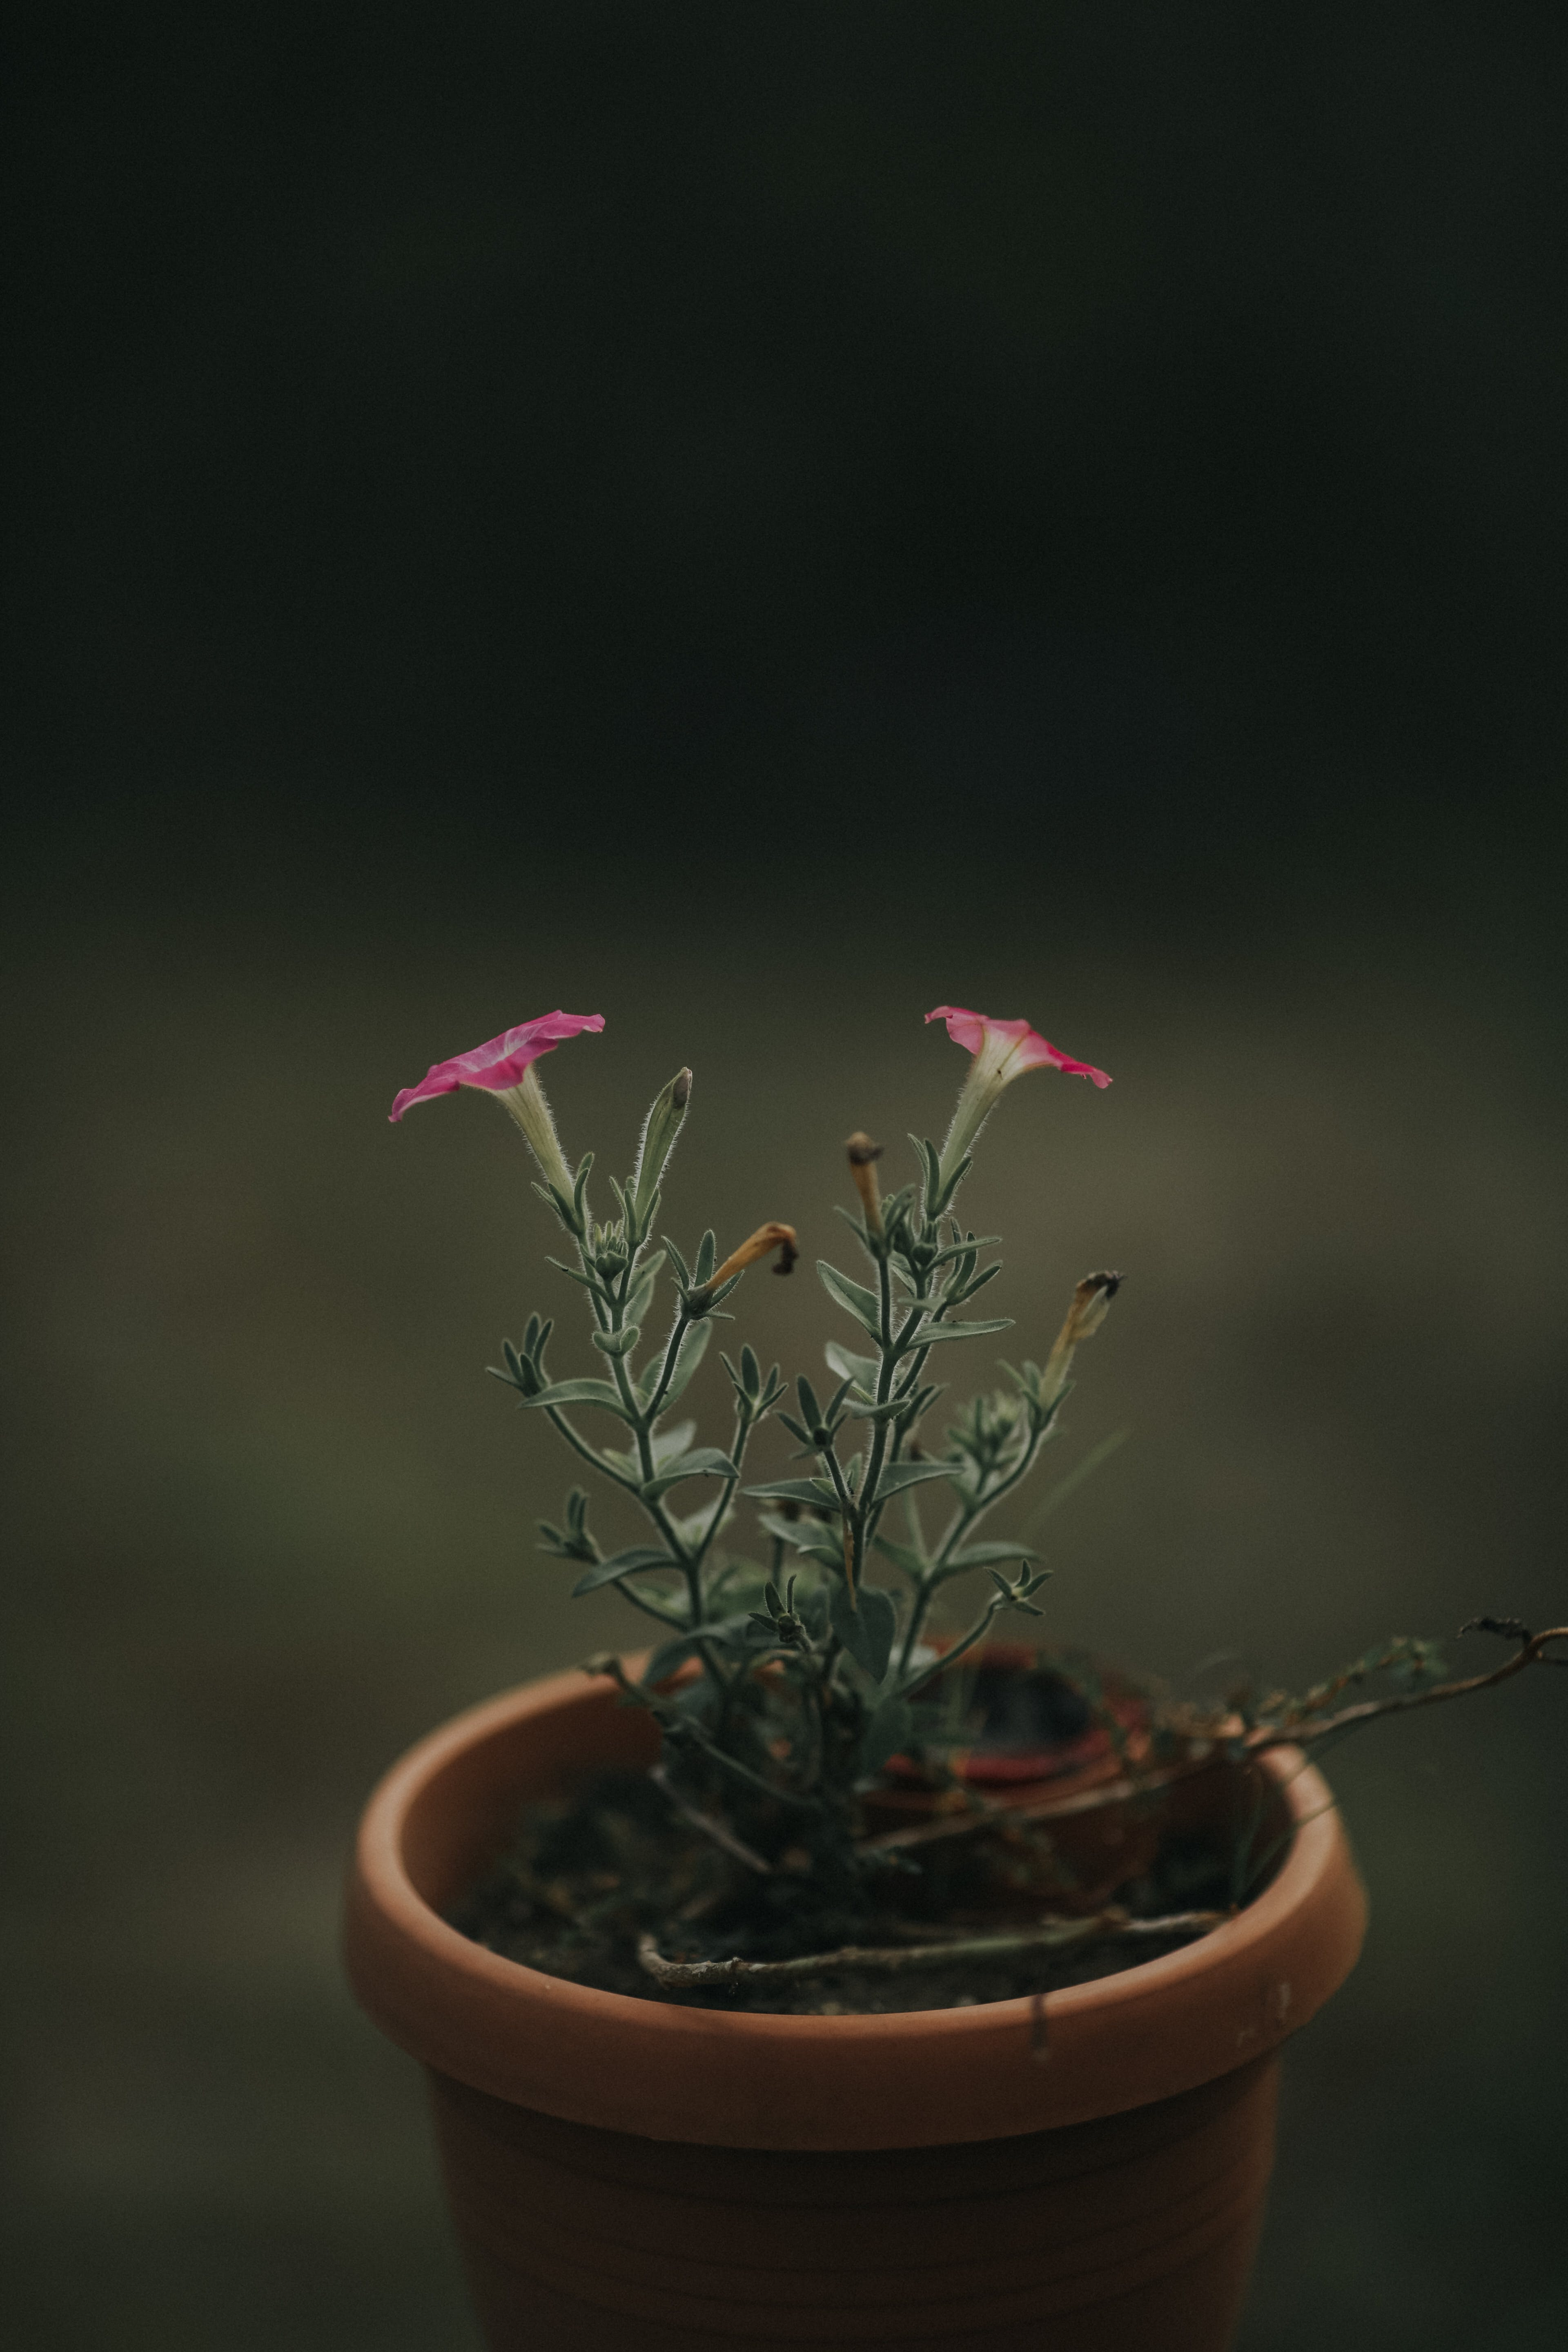 Close-up Photo of Pink Petaled Flower With Brown Pot